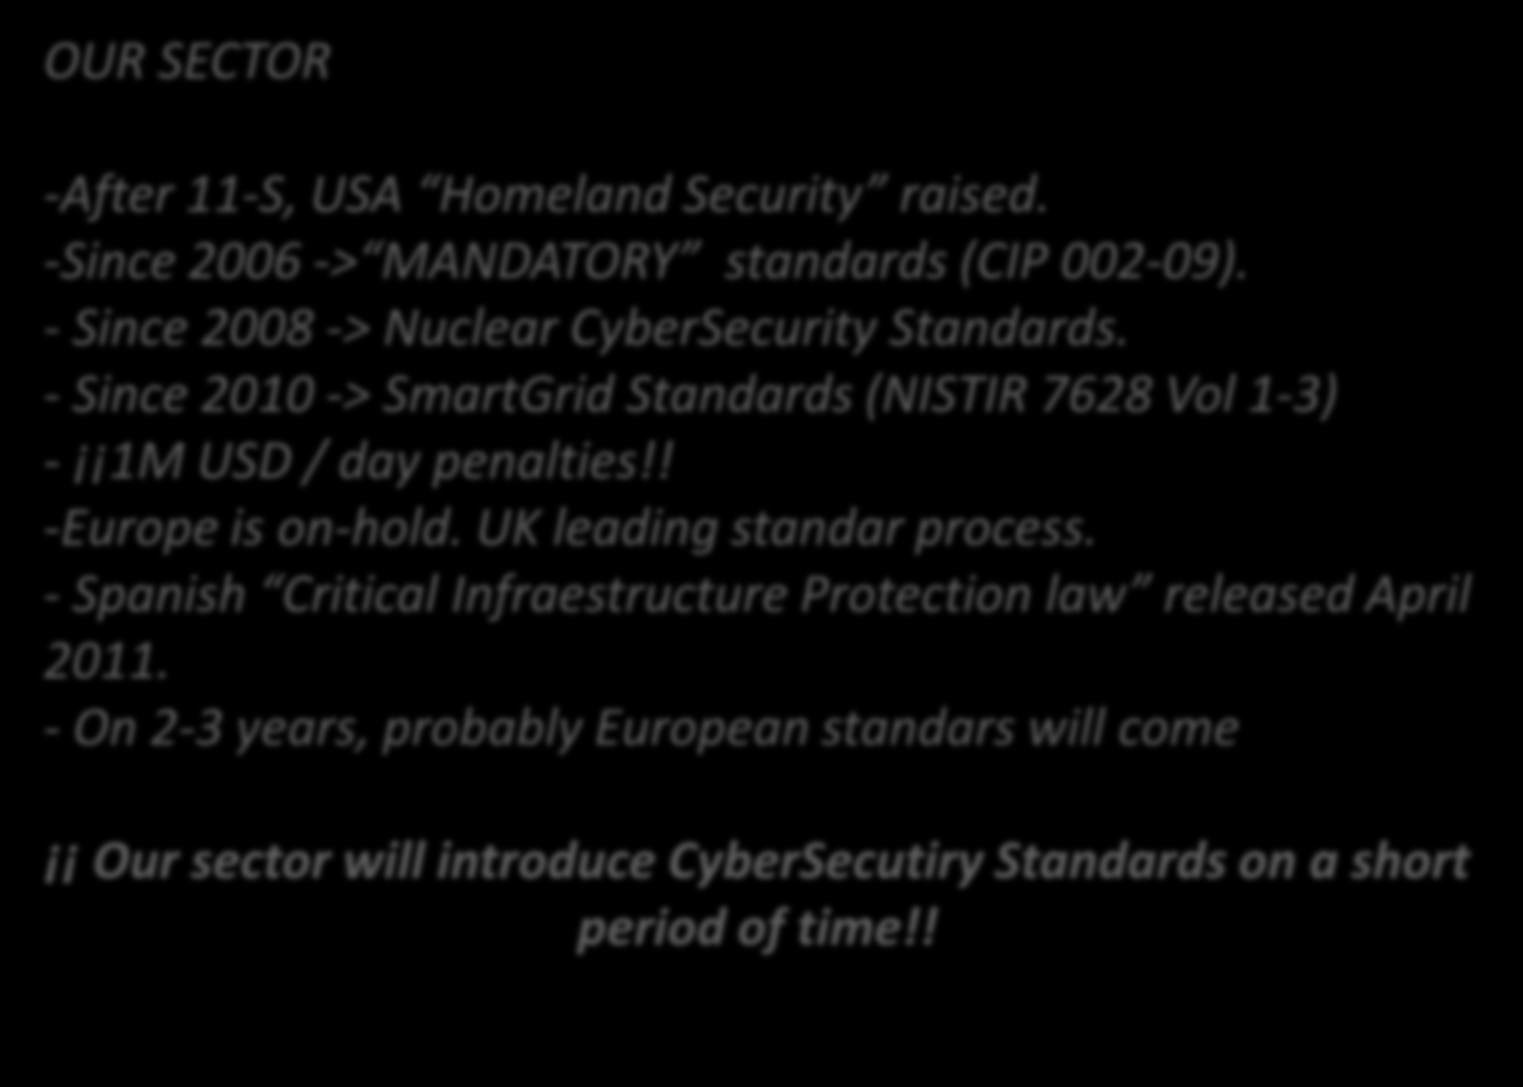 CONTEXT OUR SECTOR -After 11-S, USA Homeland Security raised. -Since 2006 -> MANDATORY standards (CIP 002-09). - Since 2008 -> Nuclear CyberSecurity Standards.